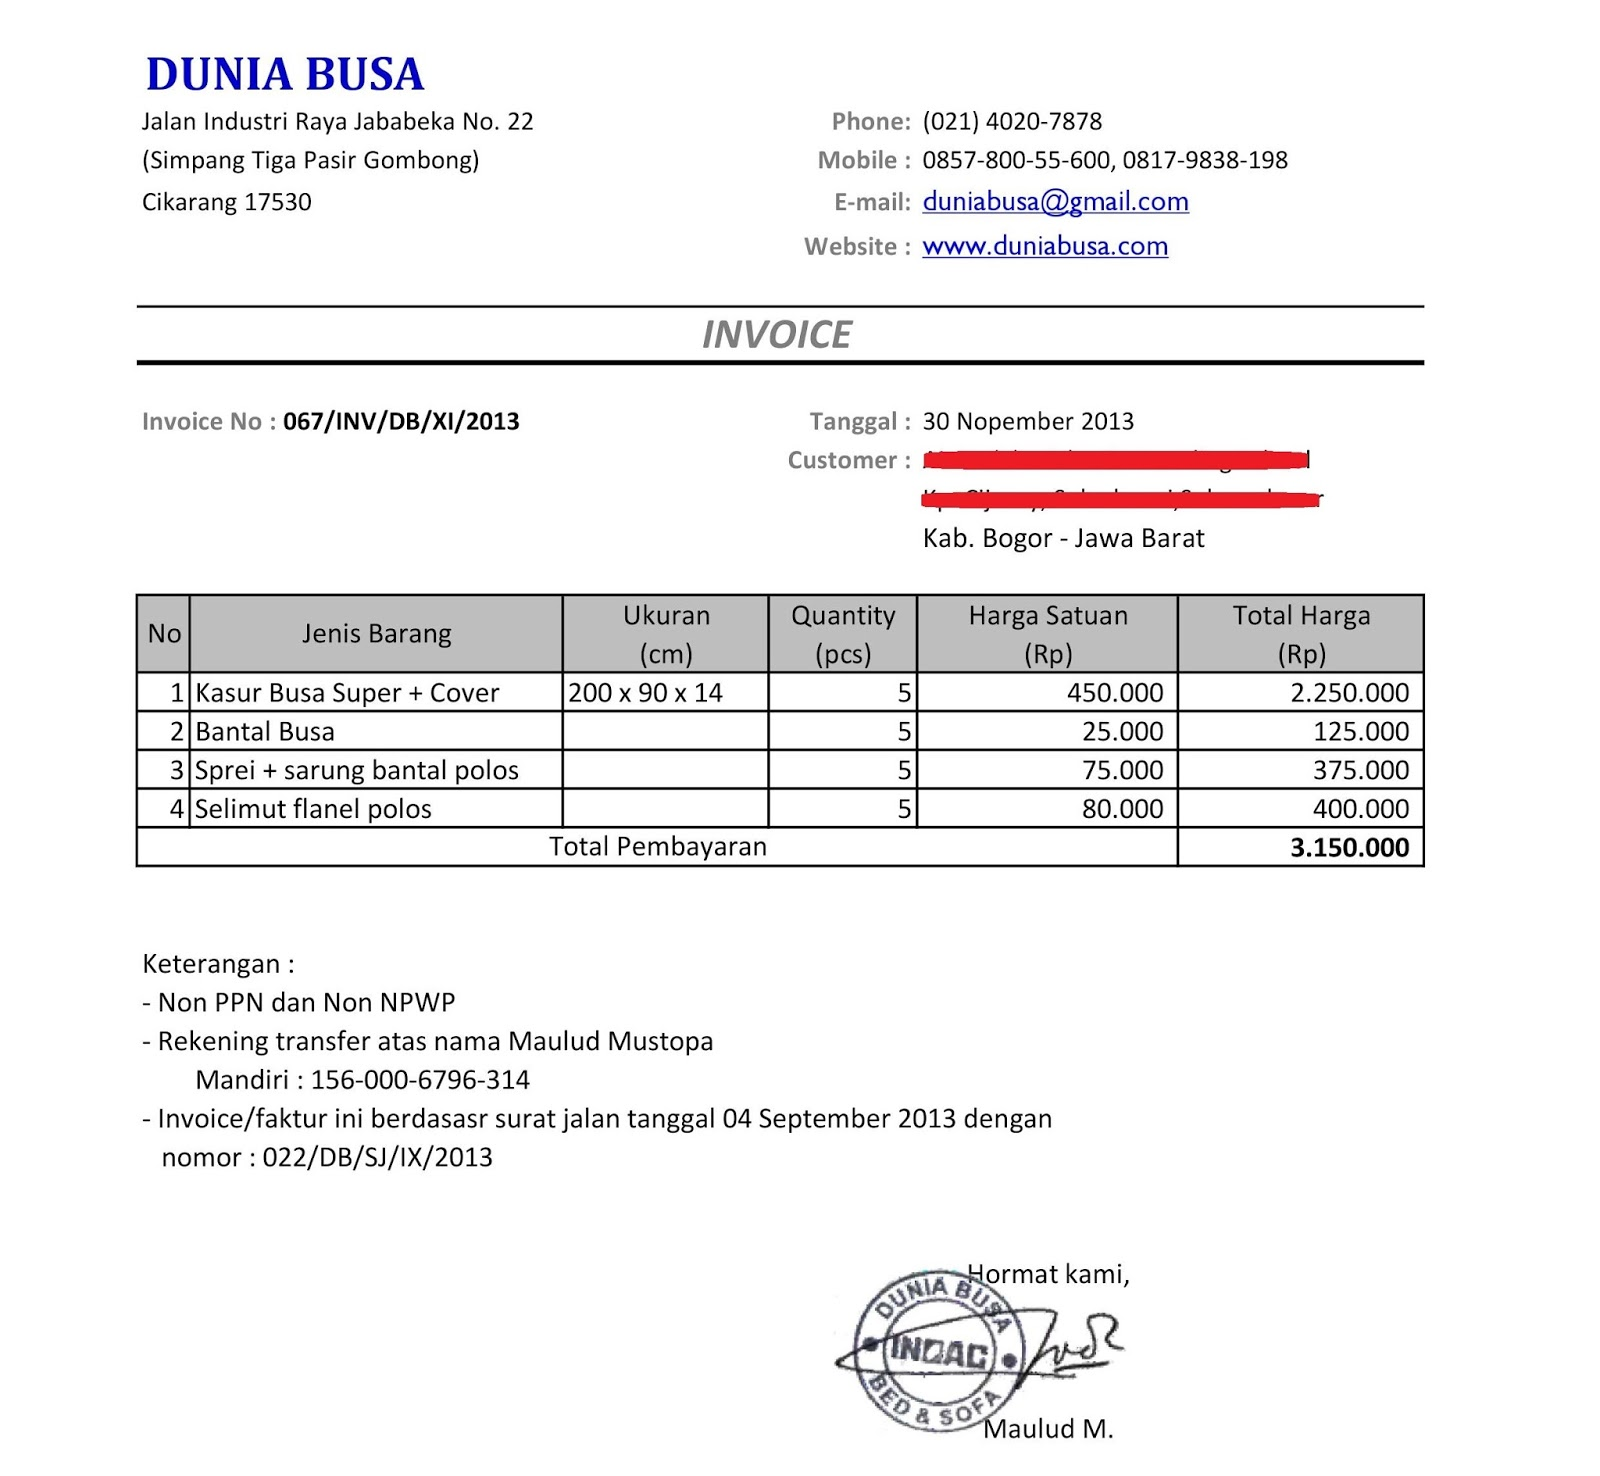 Garygrubbsus  Sweet Free Invoice Online  Create Invoice Online  Invoice Template  With Lovable Contoh Format Invoice Atau Surat Tagihan  Brankas Arsip  Free Invoice Online With Breathtaking Mazda Cx  Dealer Invoice Also Reconcile Invoices Definition In Addition Editable Invoice Template Word And How To Invoice Paypal As Well As Honda Odyssey Invoice Additionally Invoice Form Free Printable From Sklepco With Garygrubbsus  Lovable Free Invoice Online  Create Invoice Online  Invoice Template  With Breathtaking Contoh Format Invoice Atau Surat Tagihan  Brankas Arsip  Free Invoice Online And Sweet Mazda Cx  Dealer Invoice Also Reconcile Invoices Definition In Addition Editable Invoice Template Word From Sklepco